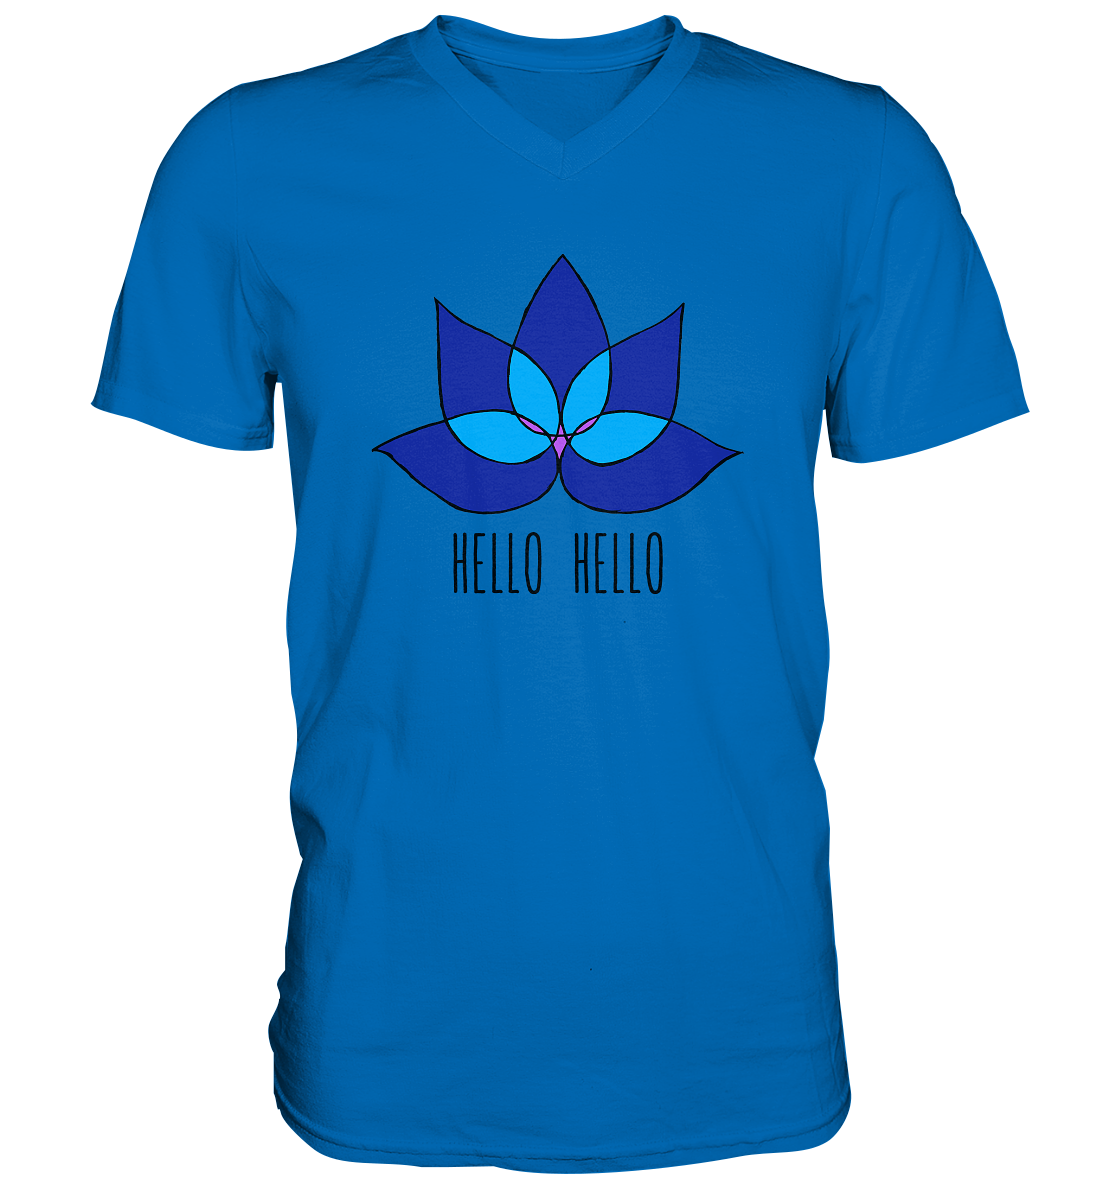 Hello Hello - Mens V-Neck Shirt (Blue Lotus )